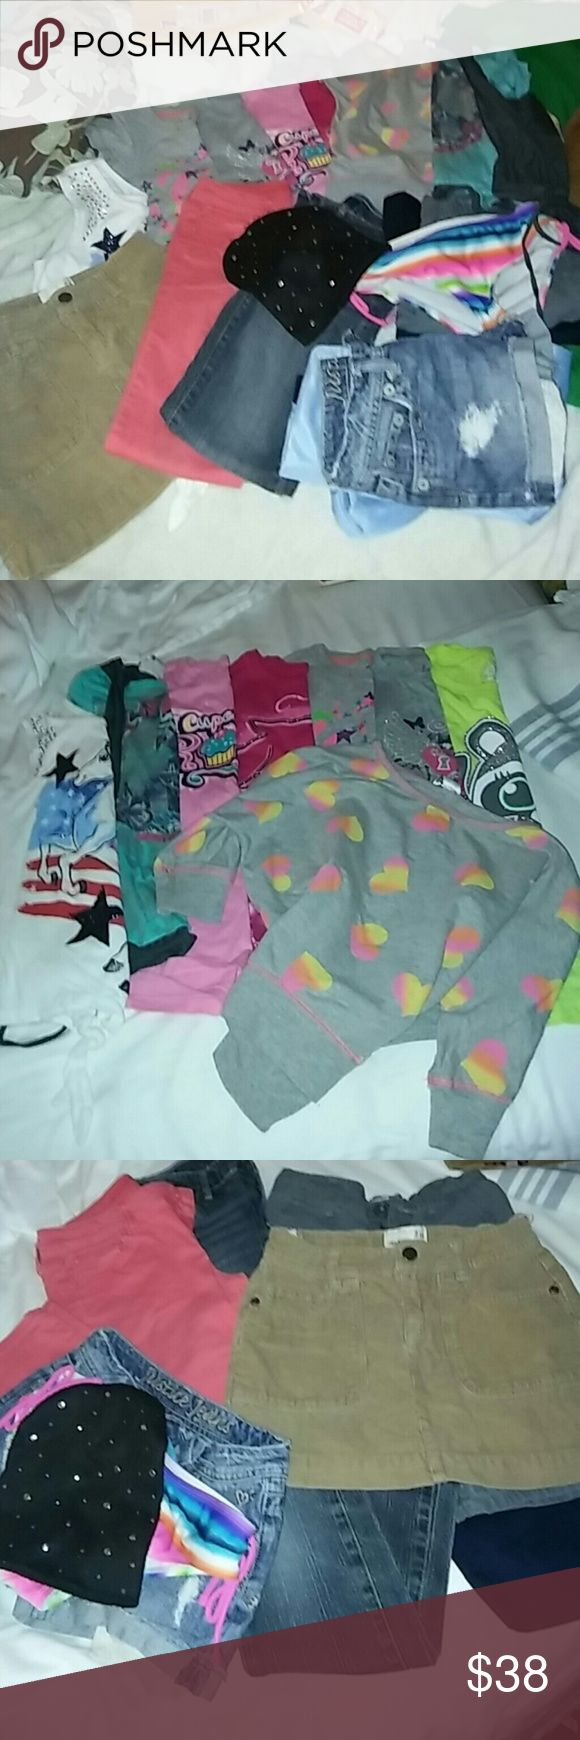 Girls bundle size 10 2 pair jeans levis and Arizona one old navy skort 2 pair long shorts old nav6 and george and 8 shirts justice and children's place last photo is last min throw ins a pair of nice justice shorts button needs fixed justice swim suit bottom and a cute hat Justice Other